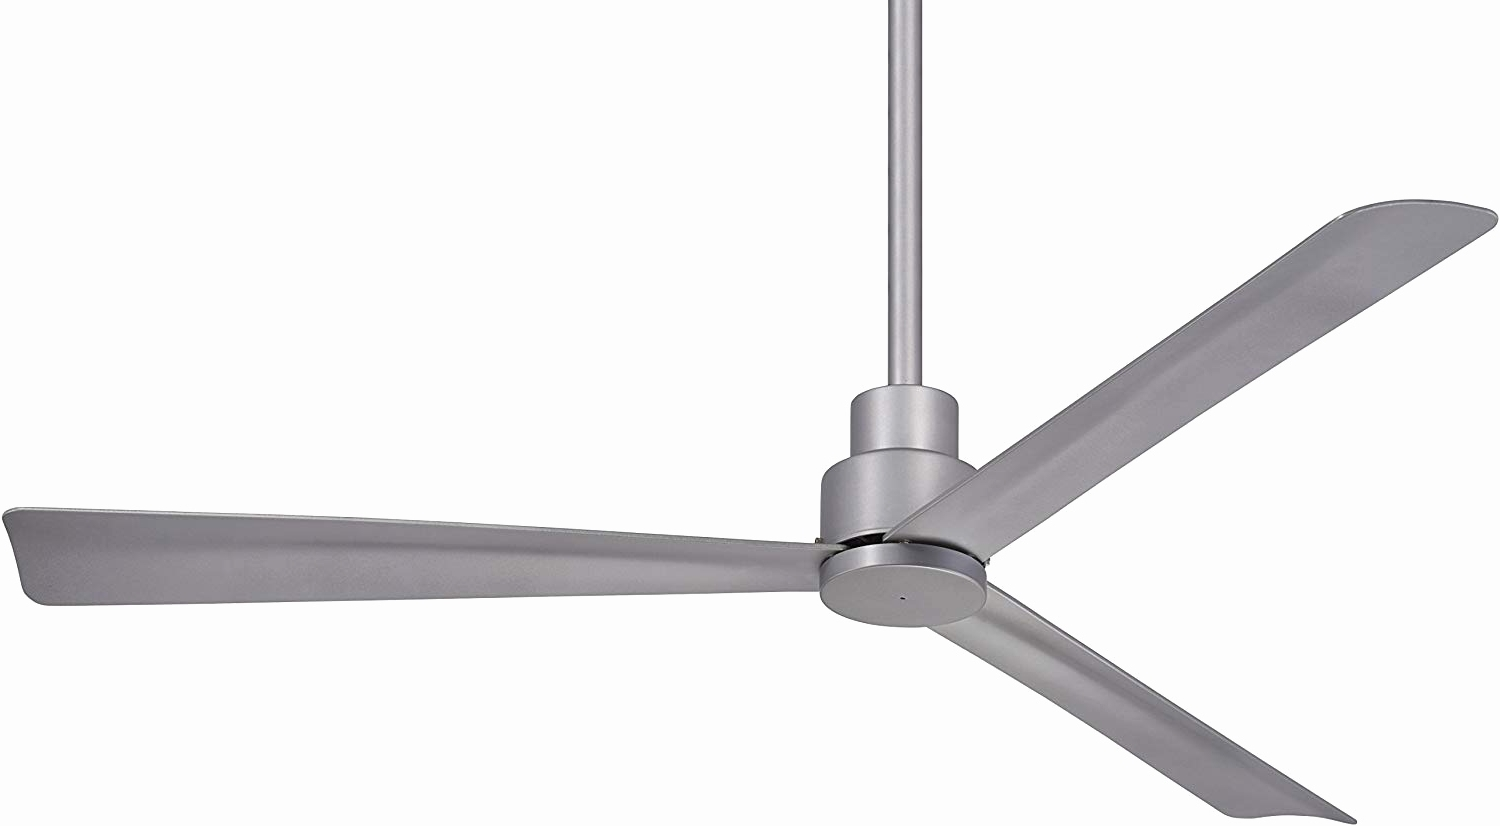 Amazon Outdoor Ceiling Fans With Lights Regarding 2019 25 Fresh Black Outdoor Ceiling Fans With Lights (View 11 of 20)